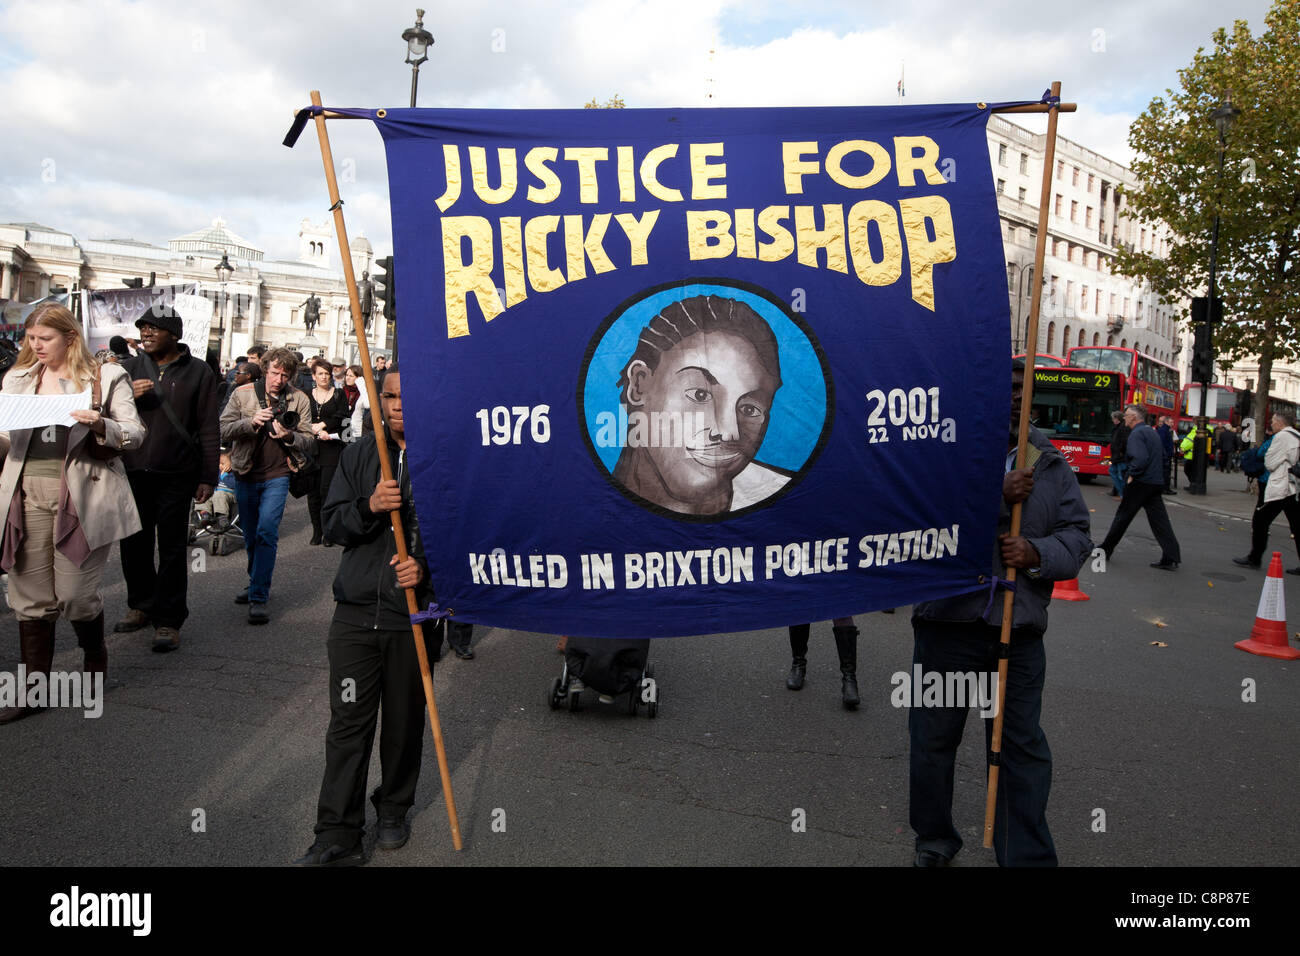 London, UK, 29/10/2011. 2 Protesters marching to Downing St holding a banner asking for justice for Ricky Bishop - Stock Image